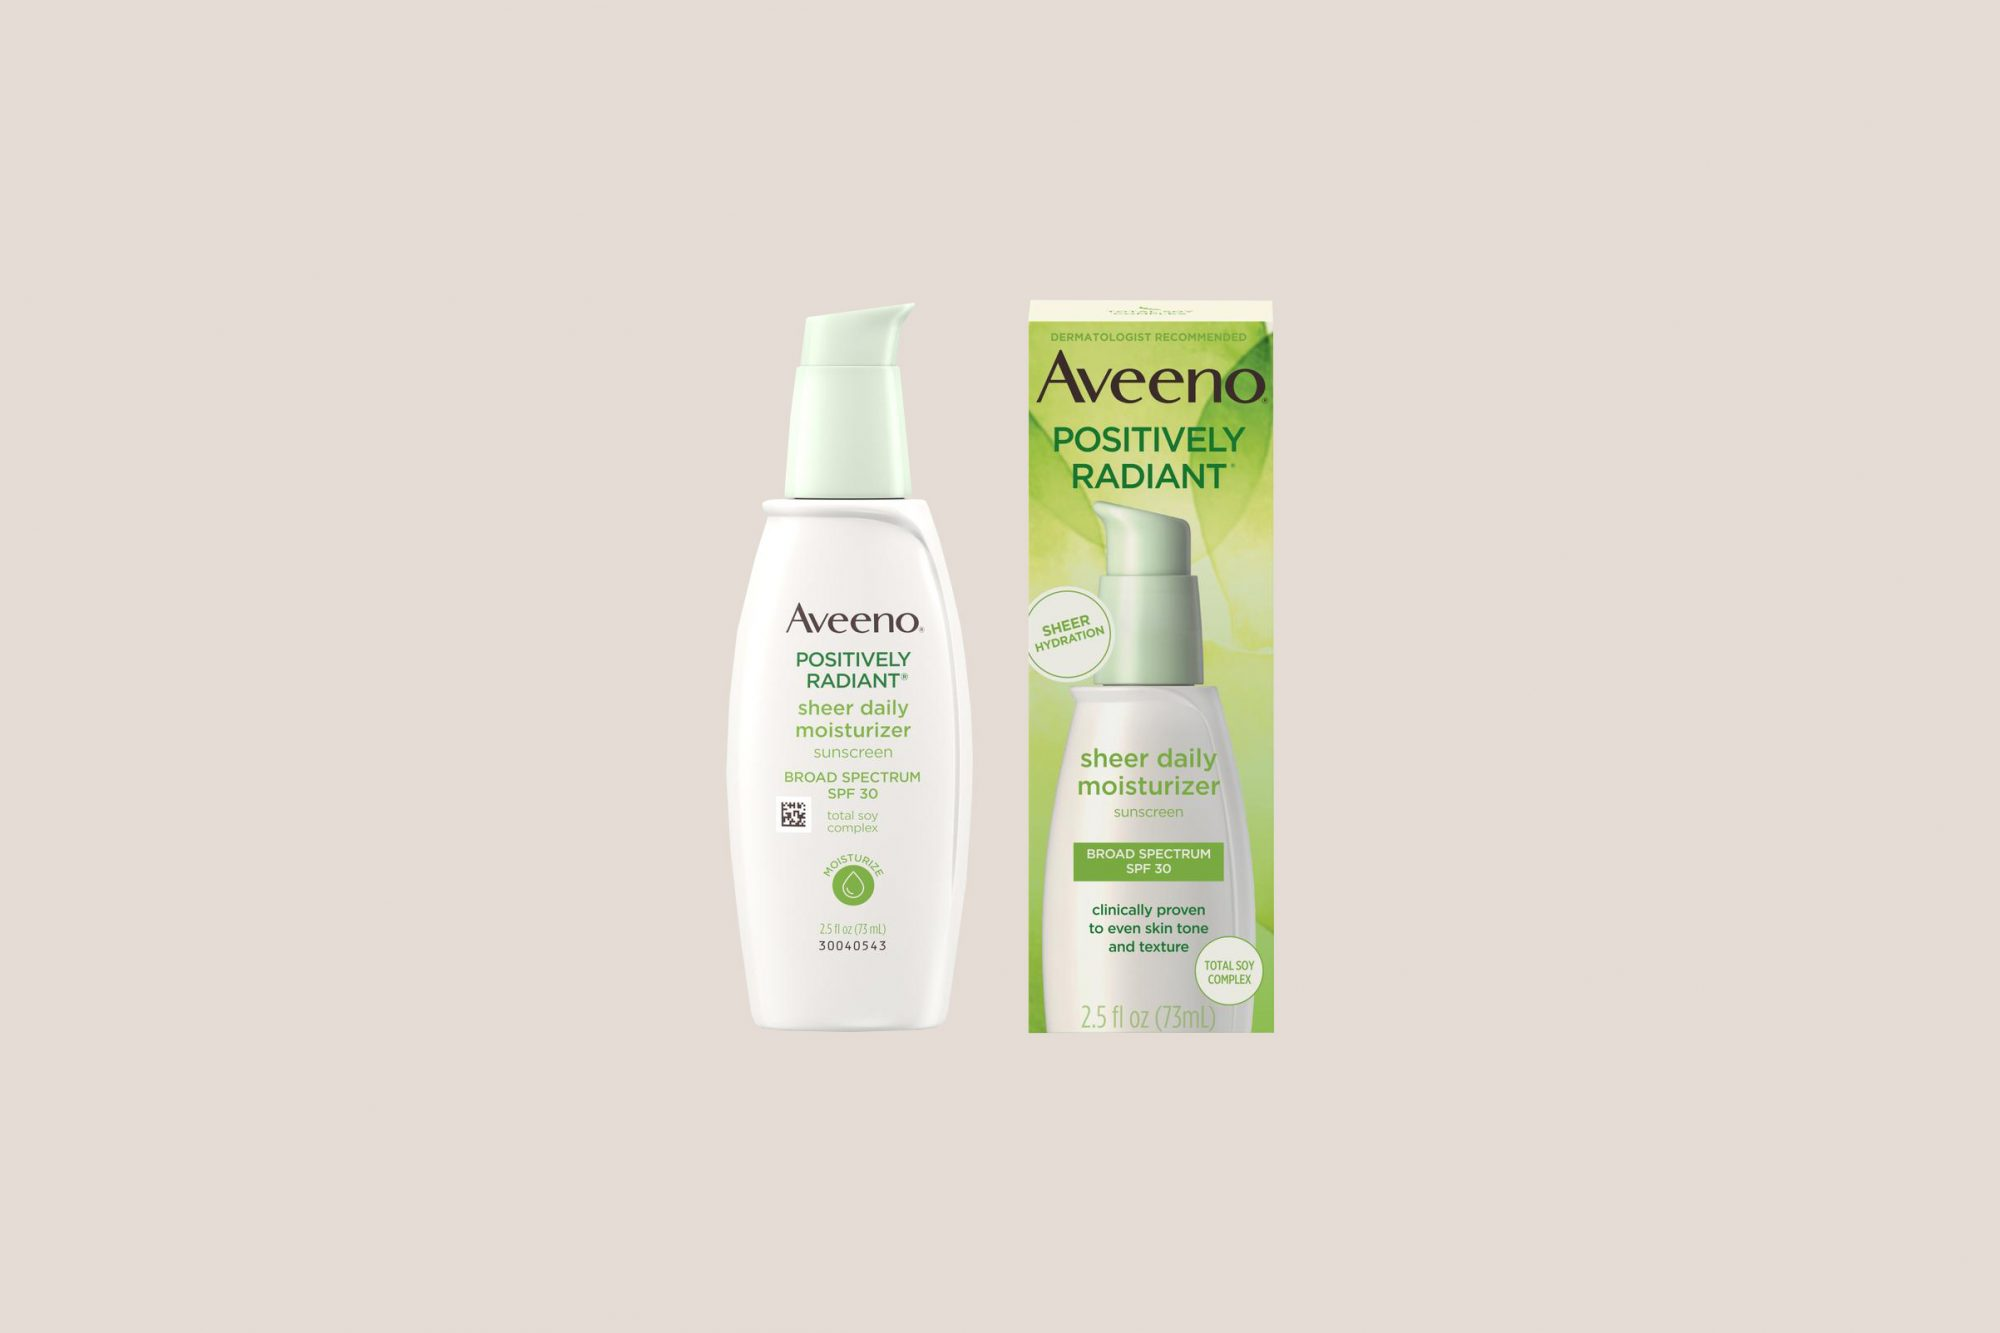 Aveeno Positively Radiant Sheer Daily Face Moisturizer with SPF 30